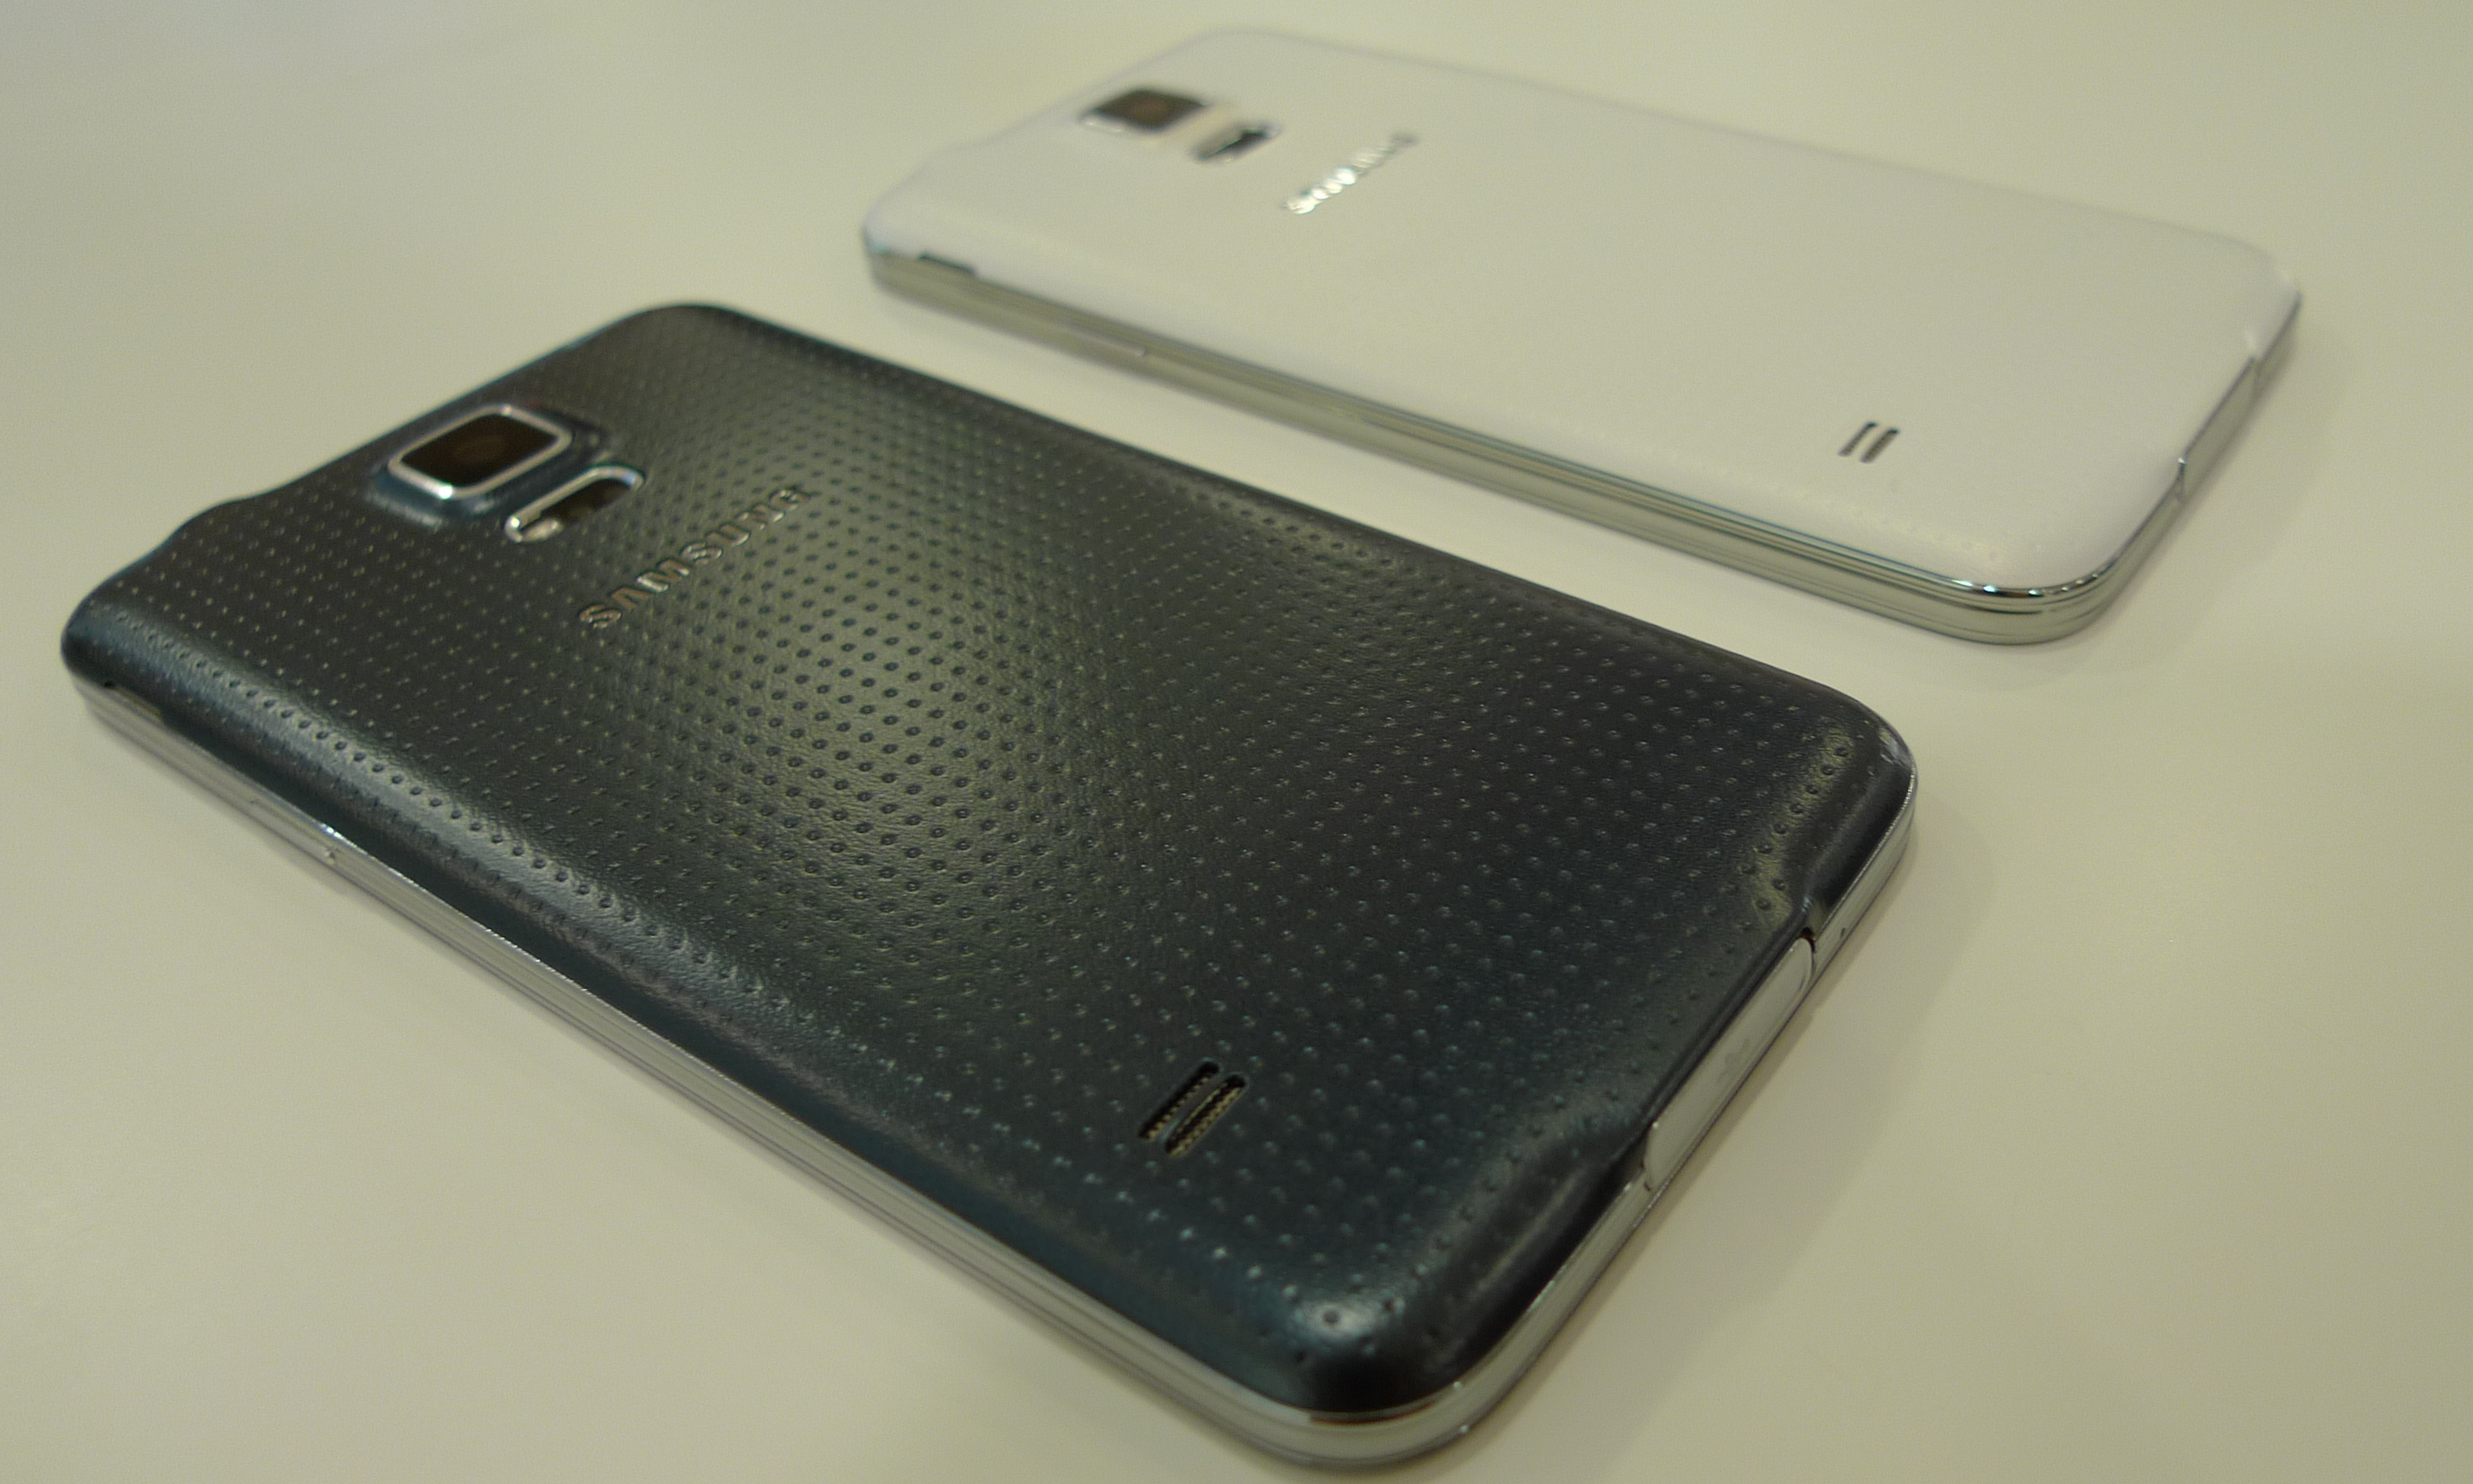 samsung galaxy s5 white vs black. p1060985 samsung galaxy s5 white vs black